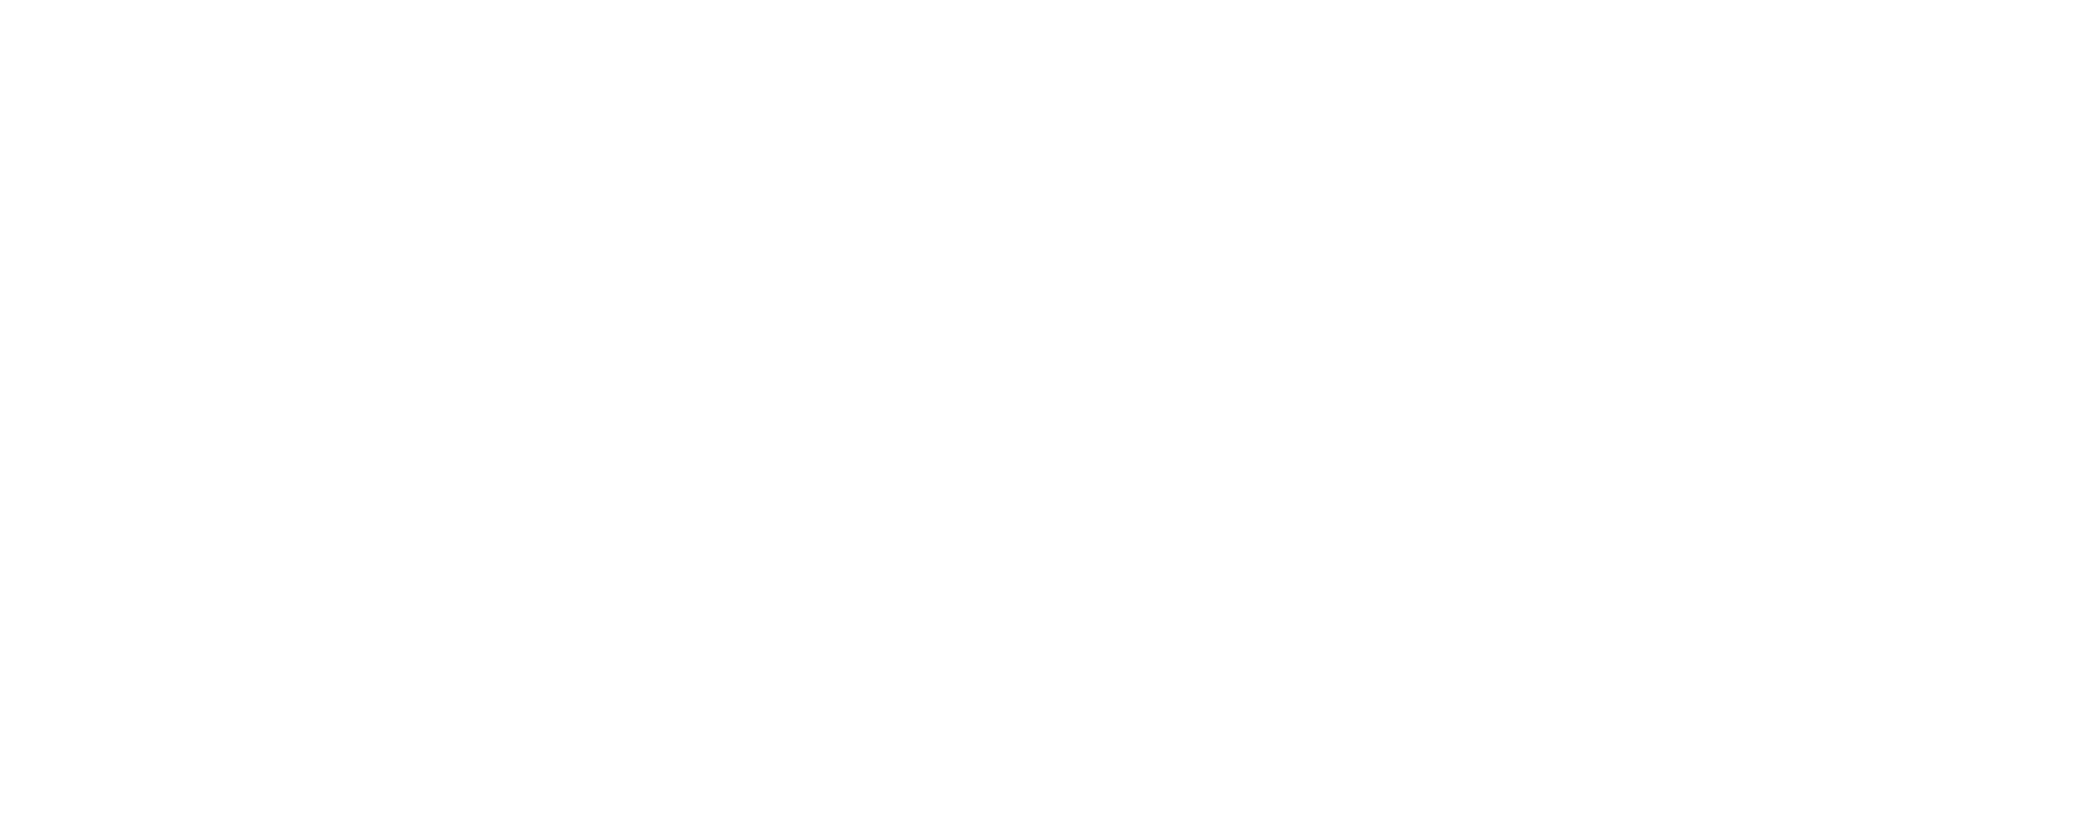 icons in line12.png